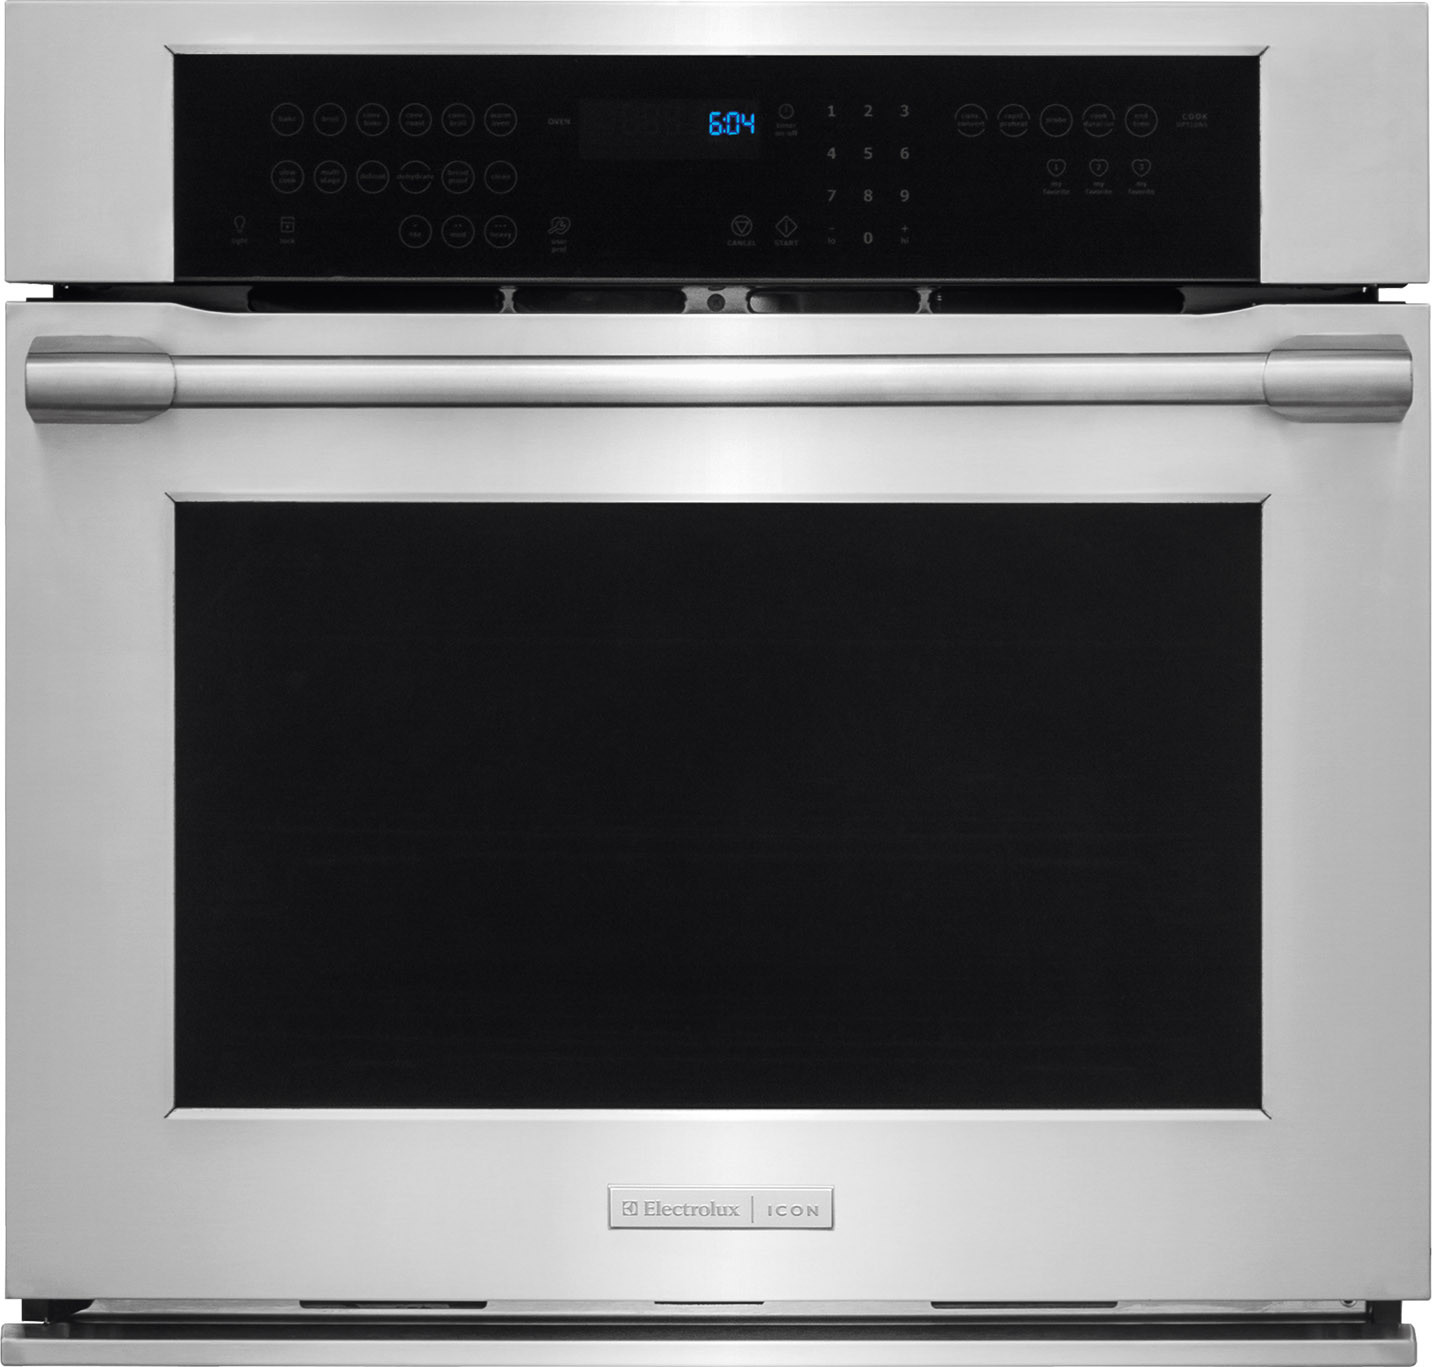 hight resolution of electrolux icon professional